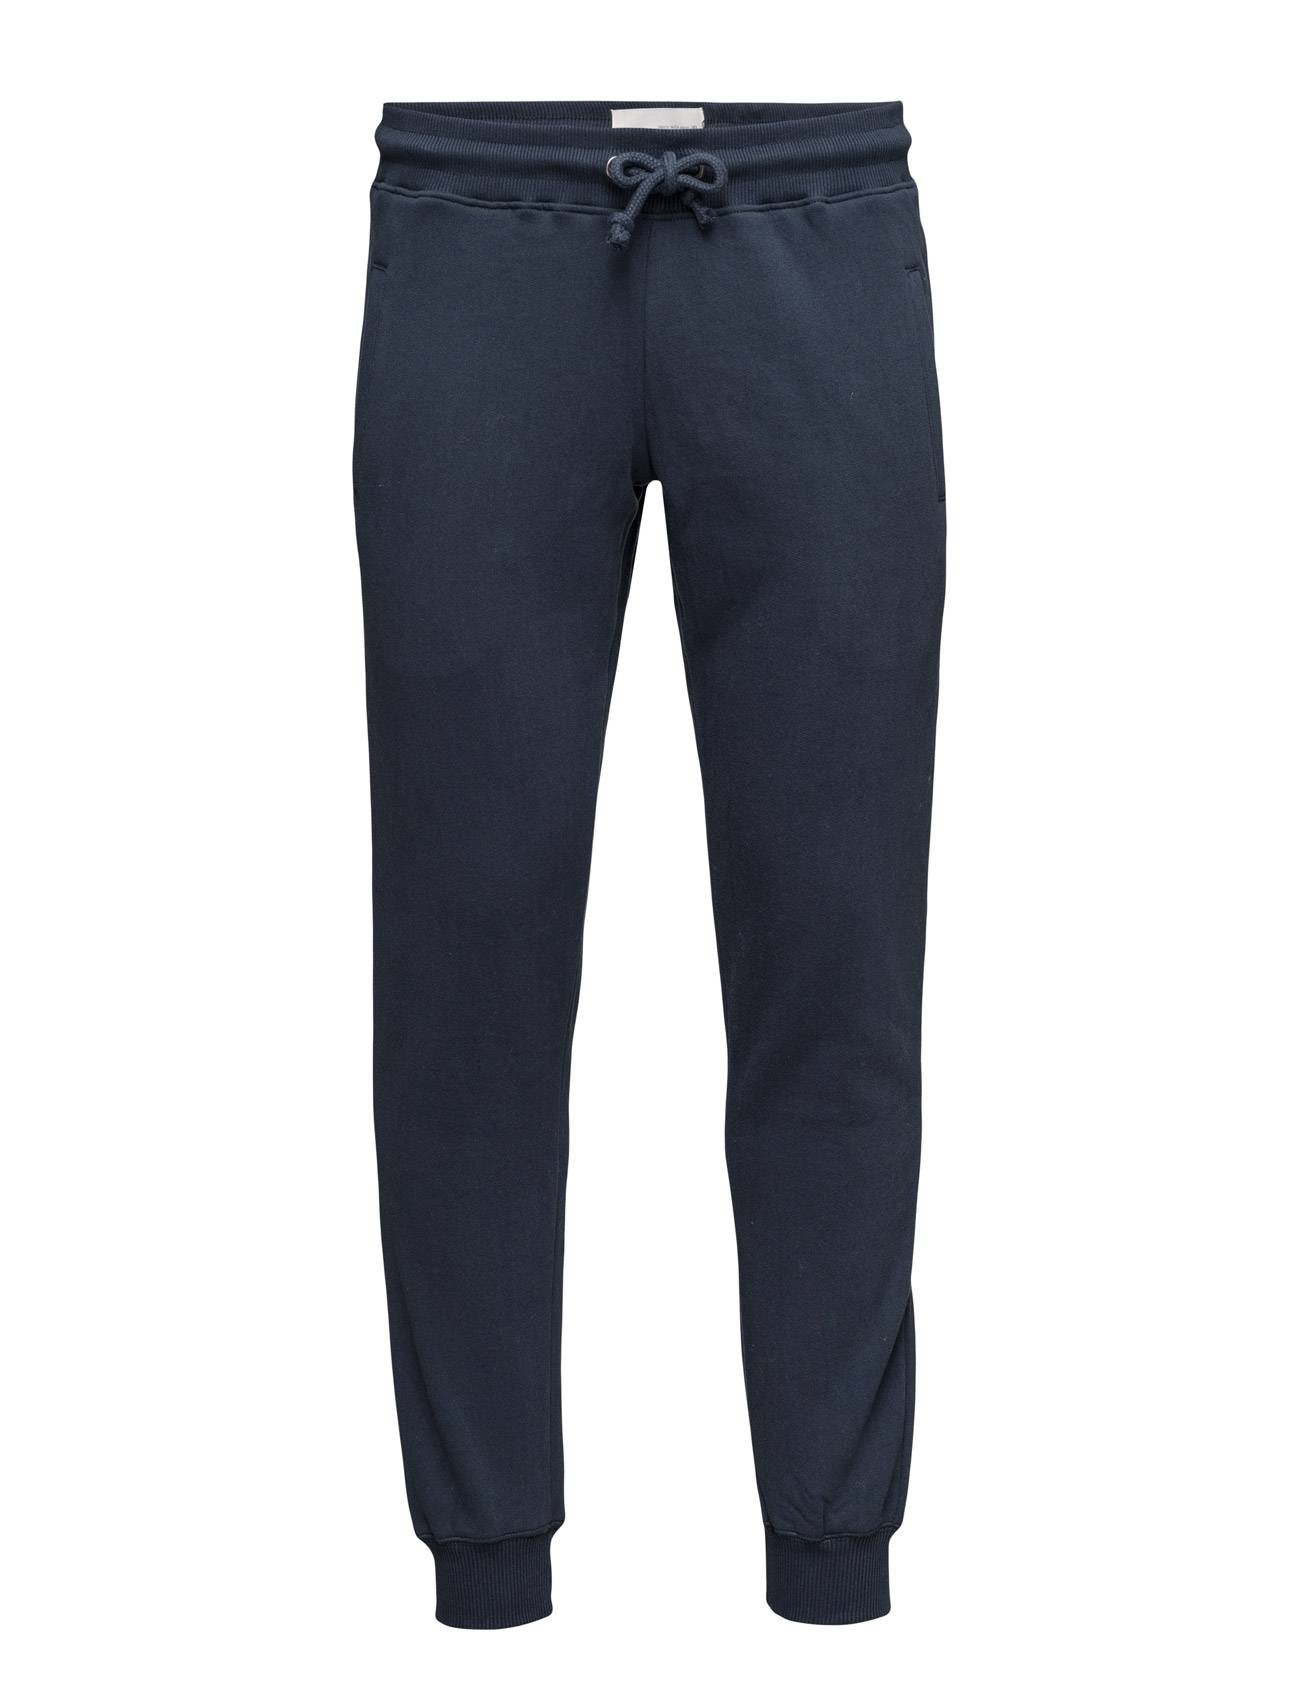 Knowledge Cotton Apparel Sweat Pant W/Brushed Backside - Got